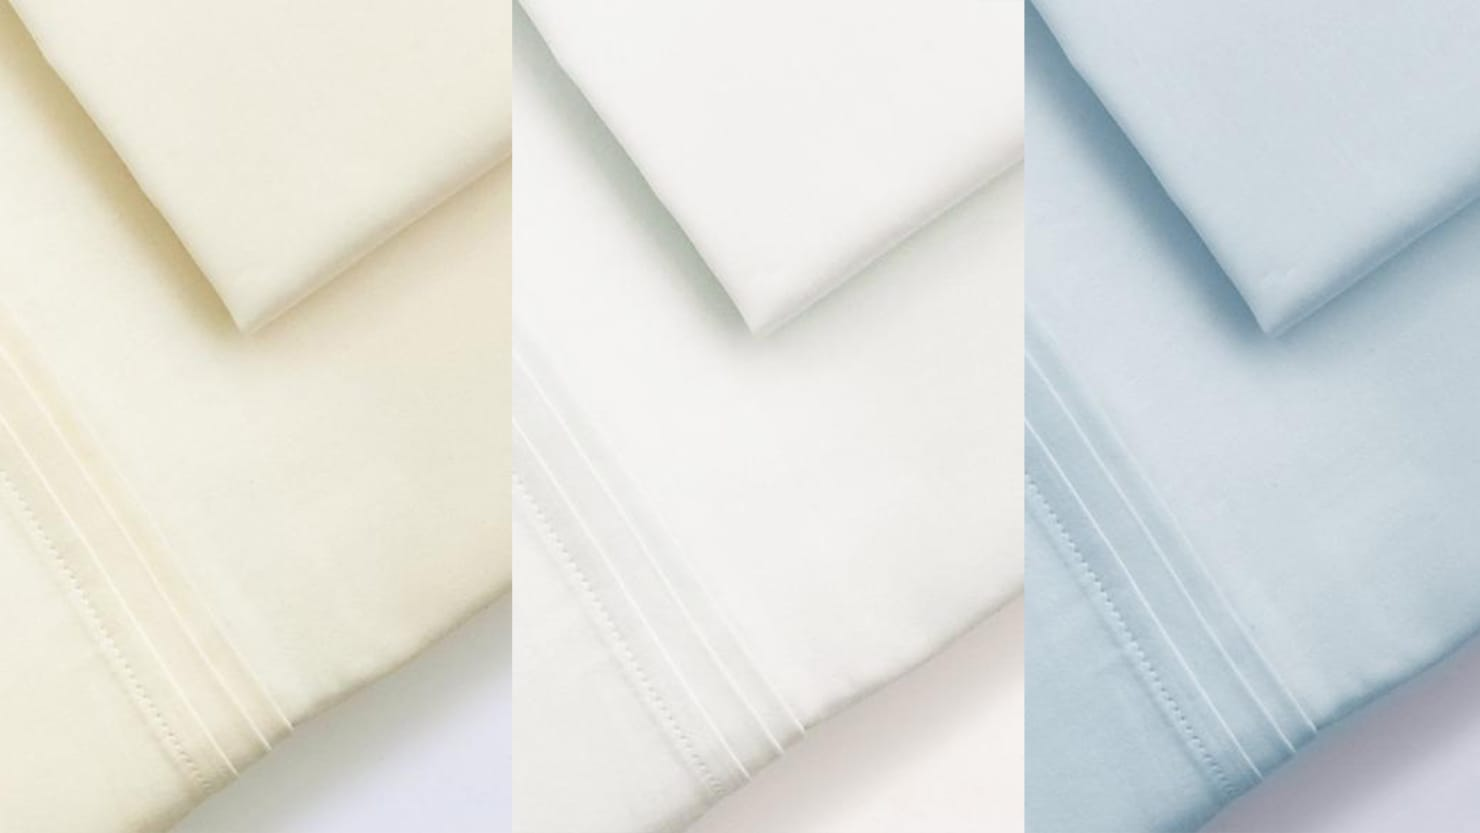 Scouted: Organic cotton sateen sheets can be sustainably made and extremely comfortable.